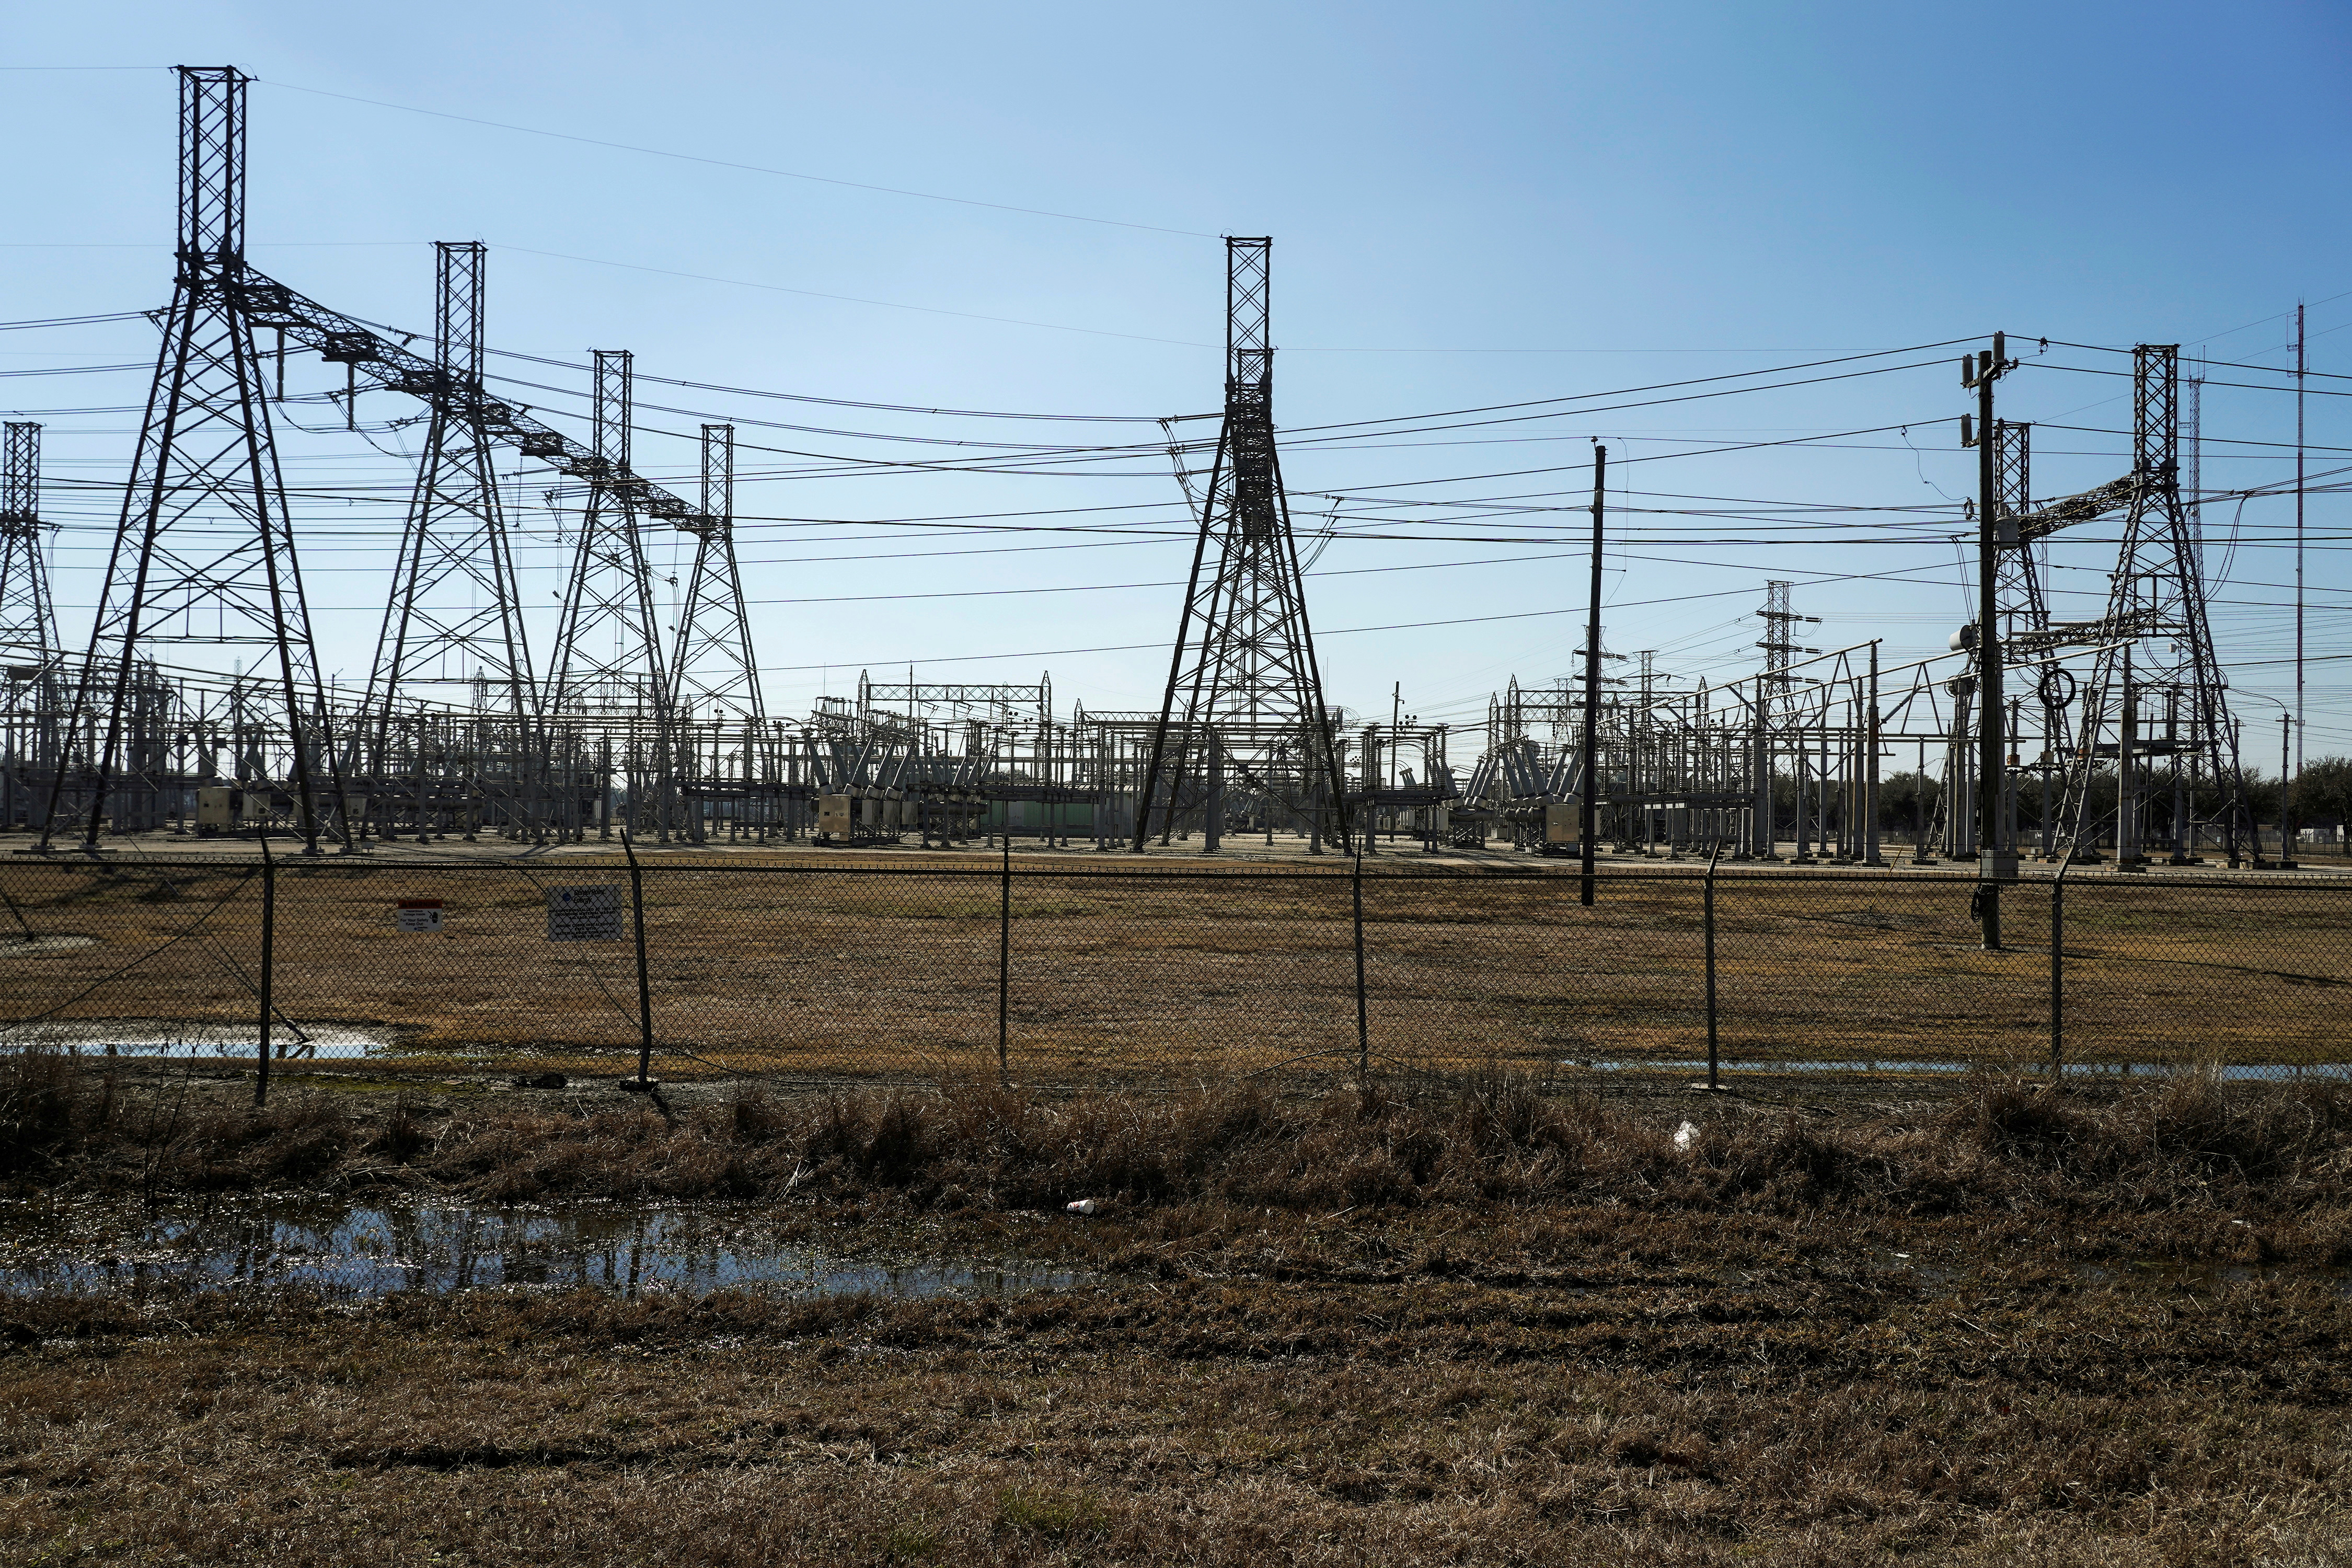 Texas Grid Asks Residents to Conserve Electricity Use as Heatwave Hits